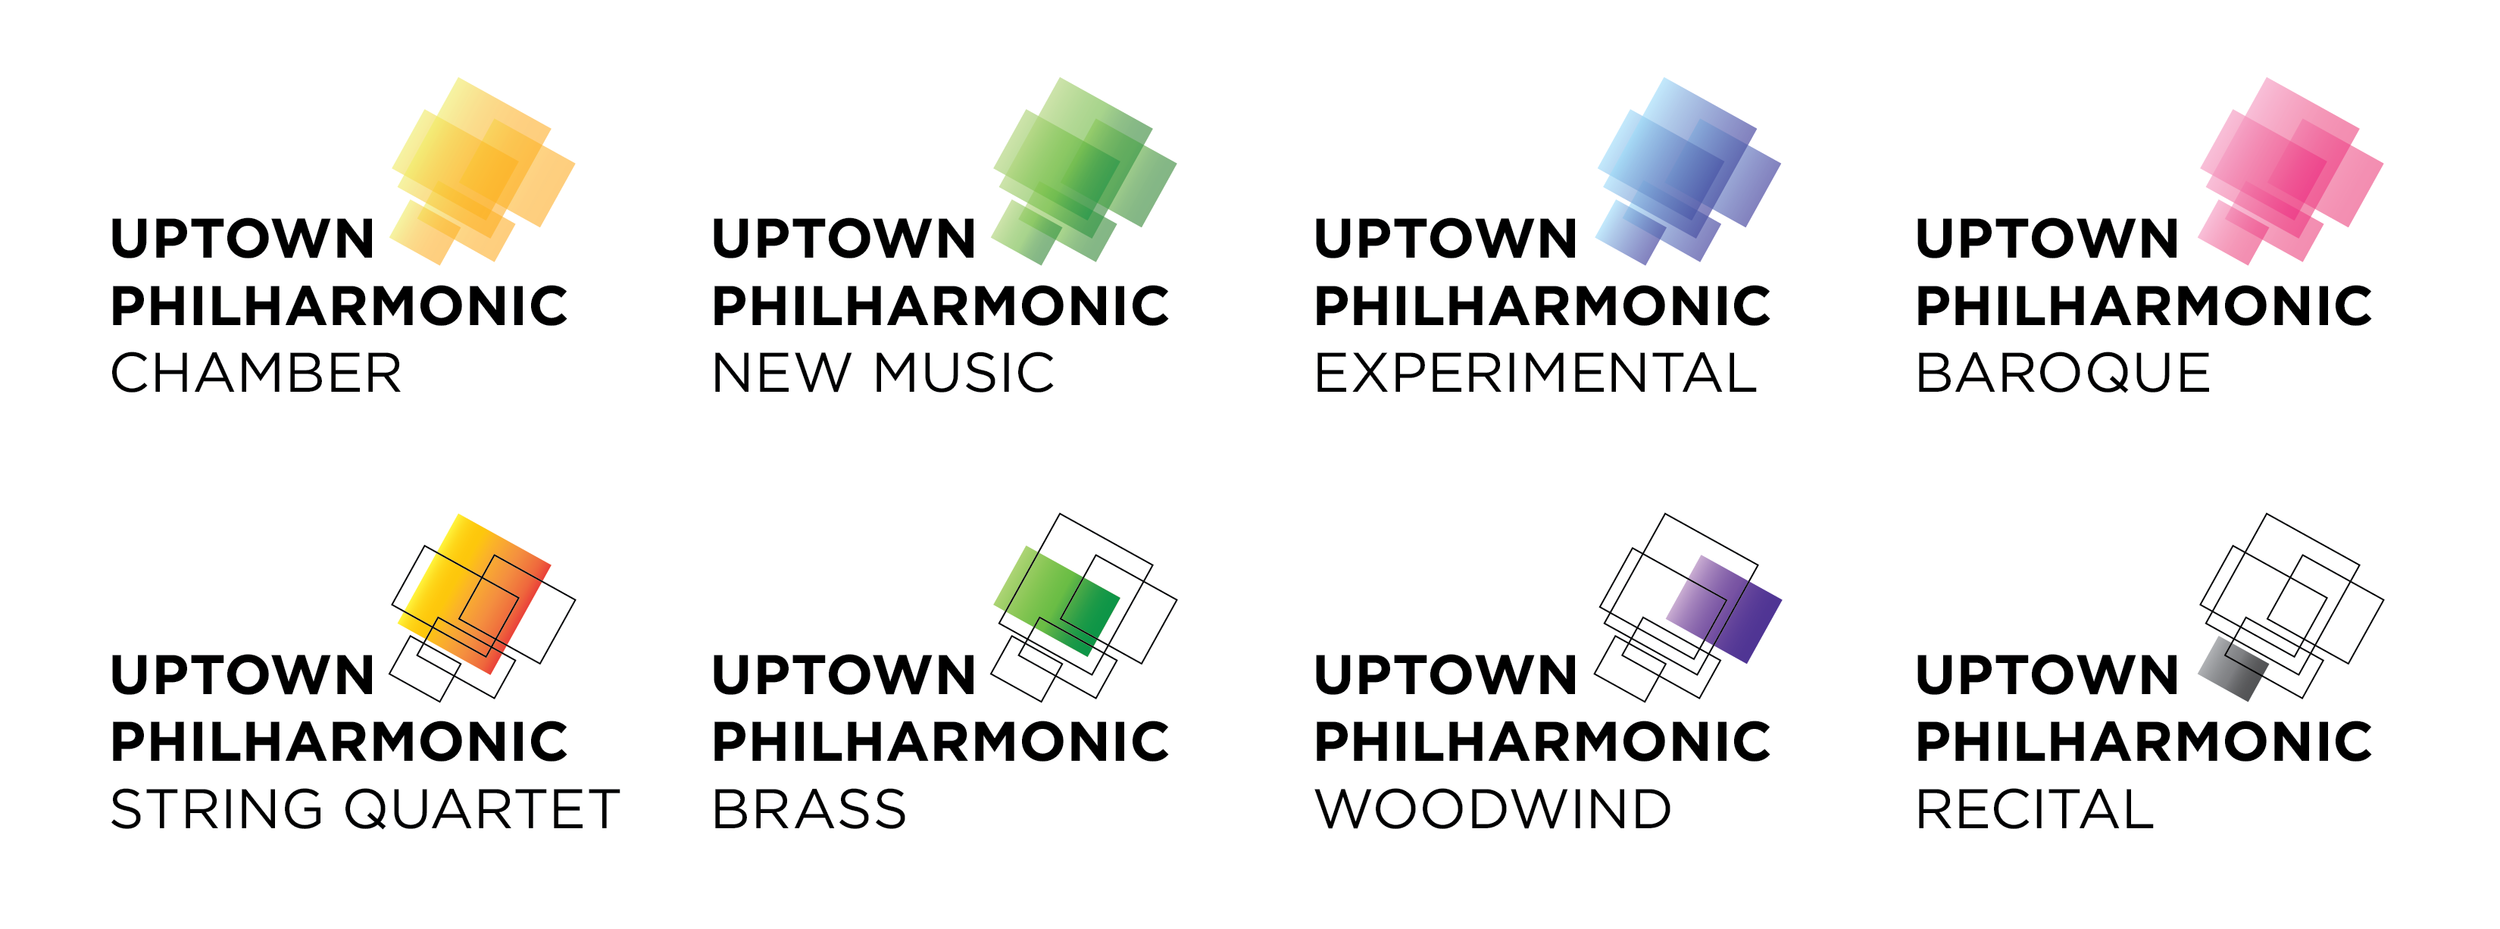 Uptown Phil Logo System white background.png